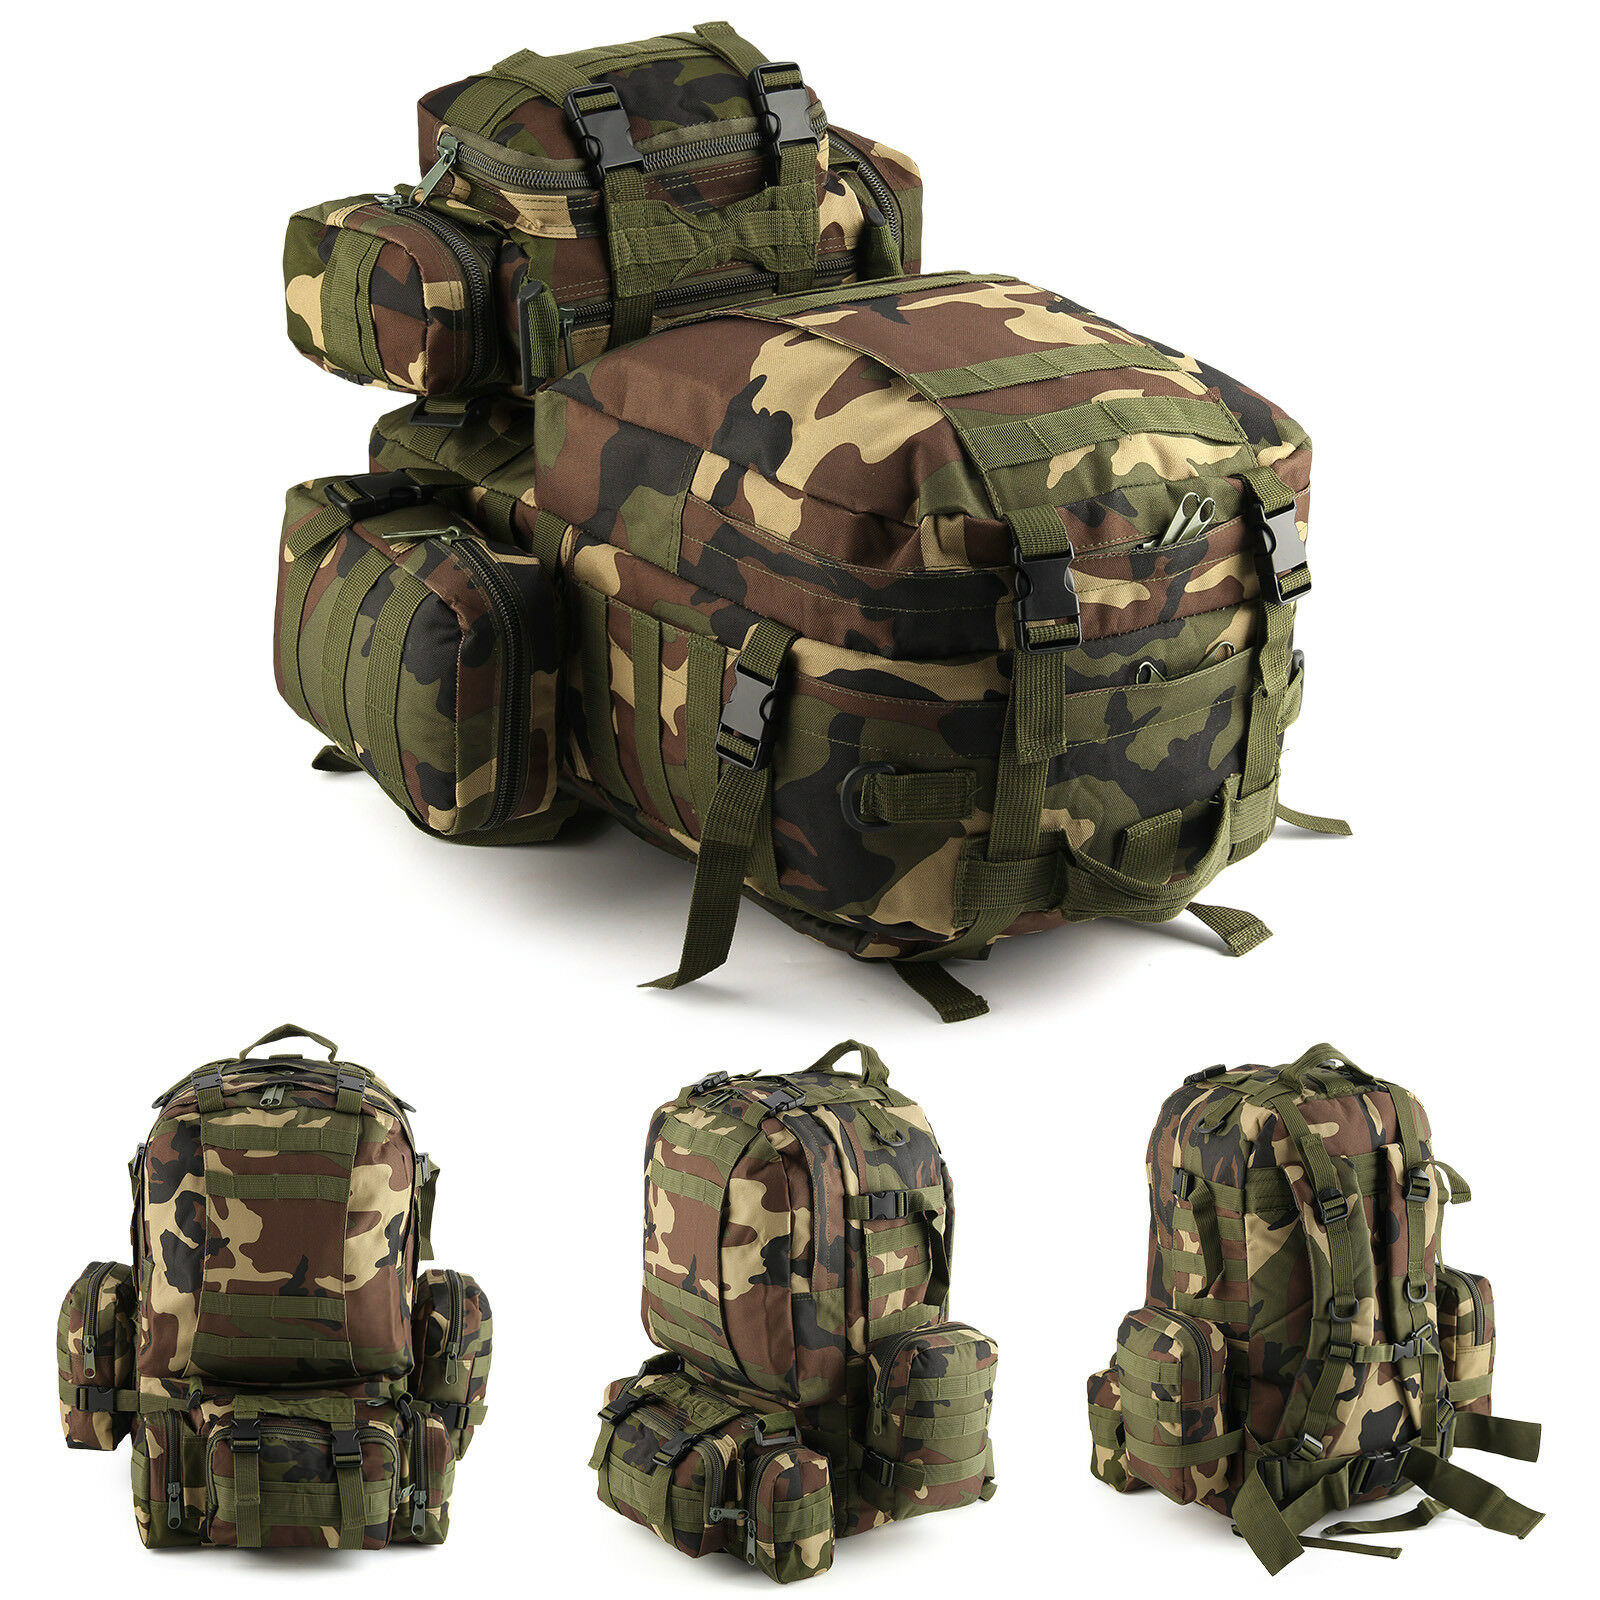 Wooden Camouflage 50L Modern Military Tactical Army Rucksacks Molle Backpack Camping Hiking Bag